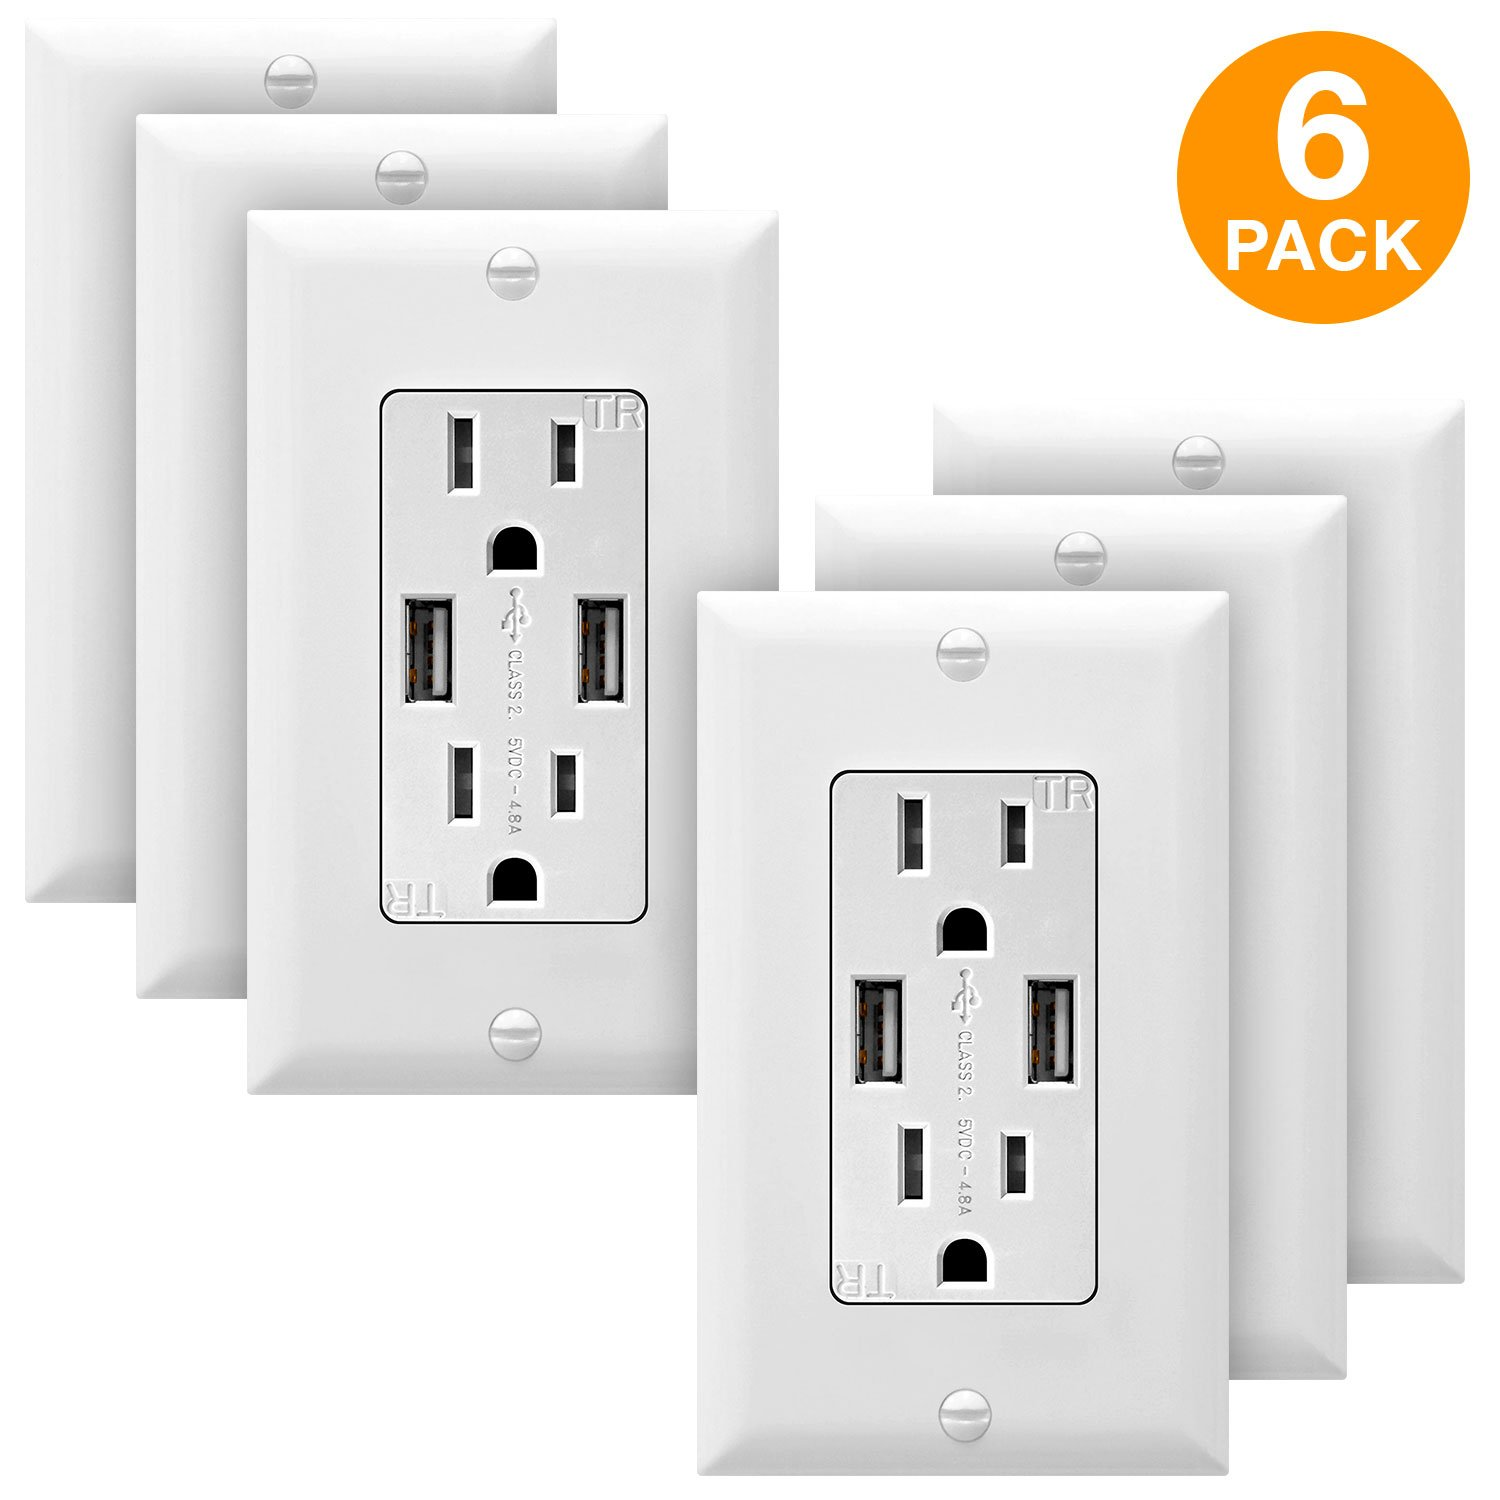 TOPGREENER 4.8A High Speed USB Wall Outlet, 15A Tamper-Resistant Receptacles, Compatible with iPhone XS/MAX/XR/X/8/7, Samsung Galaxy S9/S8/S7, LG, HTC & other Smartphones, UL Listed, TU21548A, 6Pack by TOPGREENER